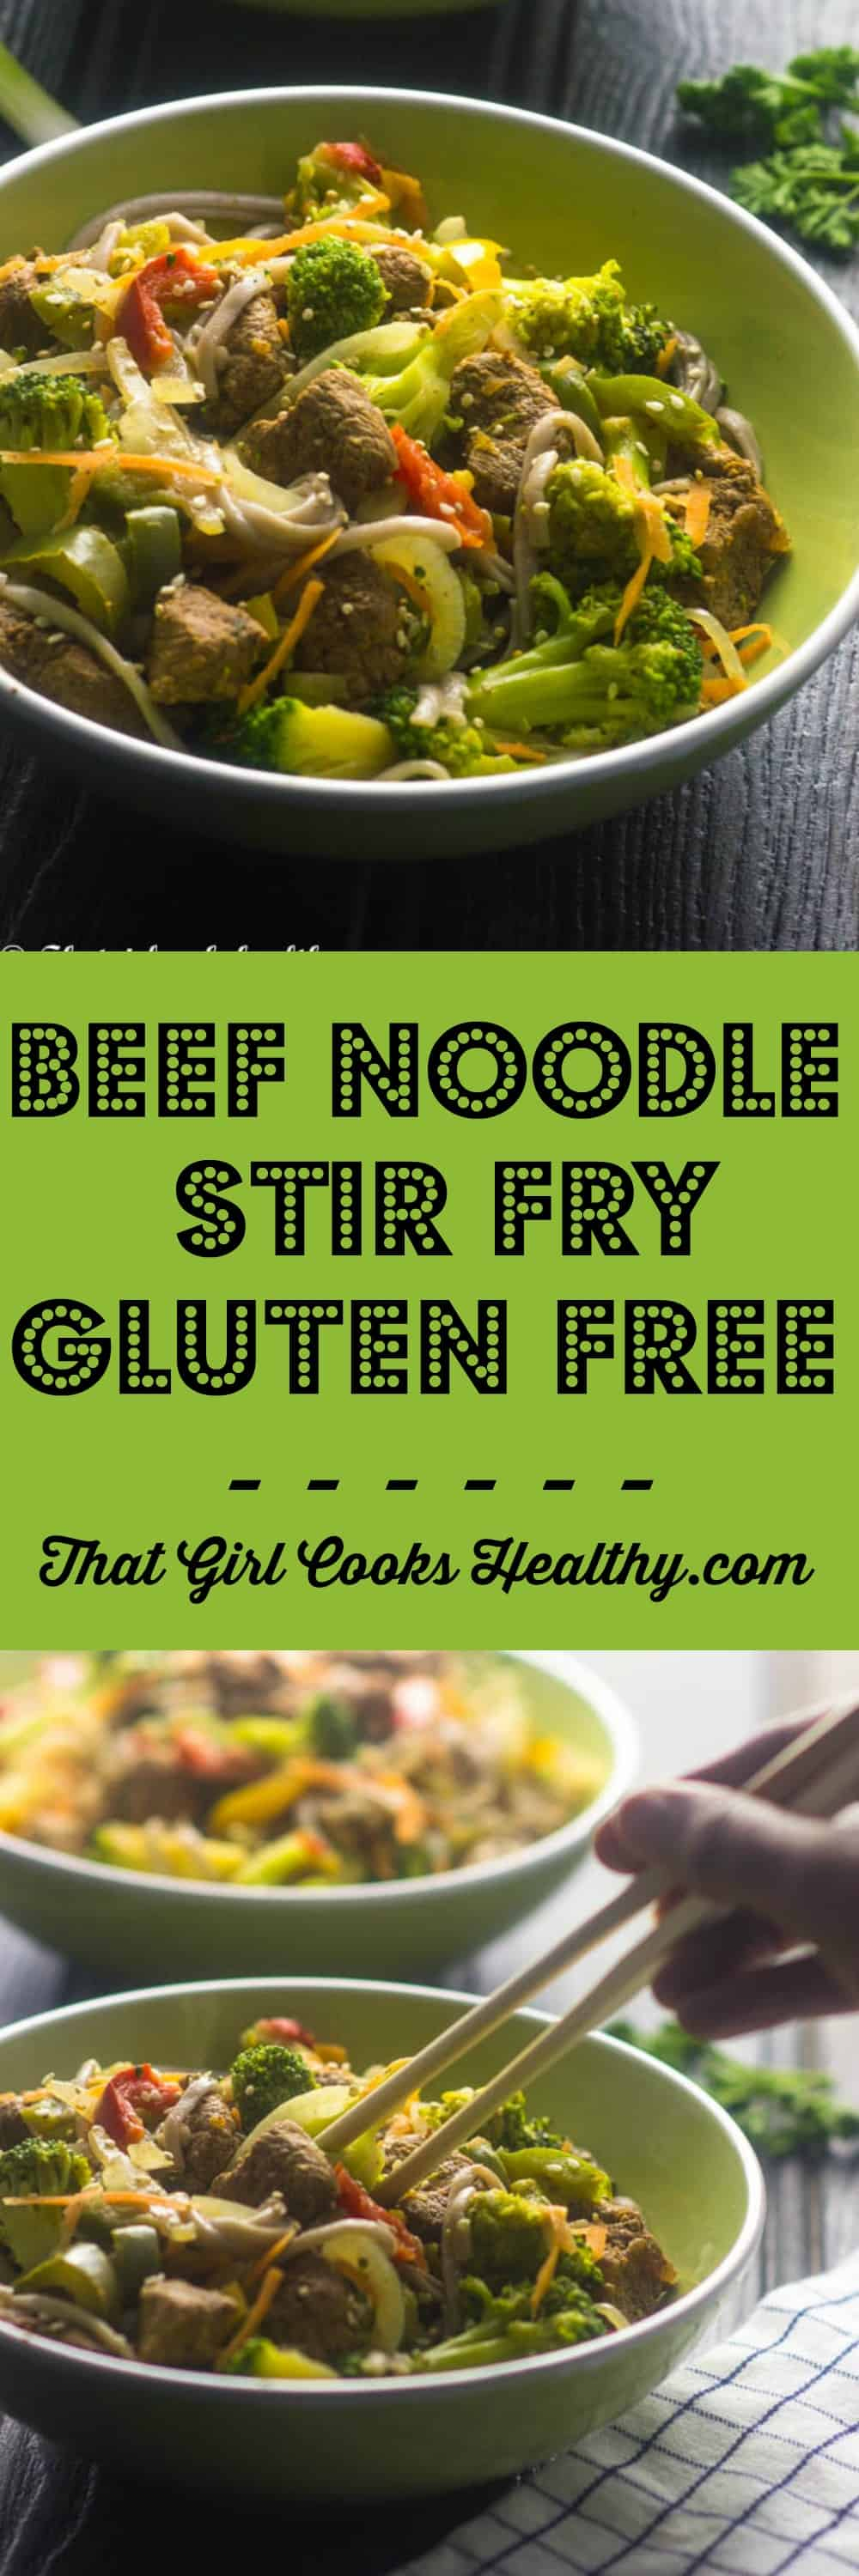 Beef Noodle Stir Fry Gluten Free That Girl Cooks Healthy